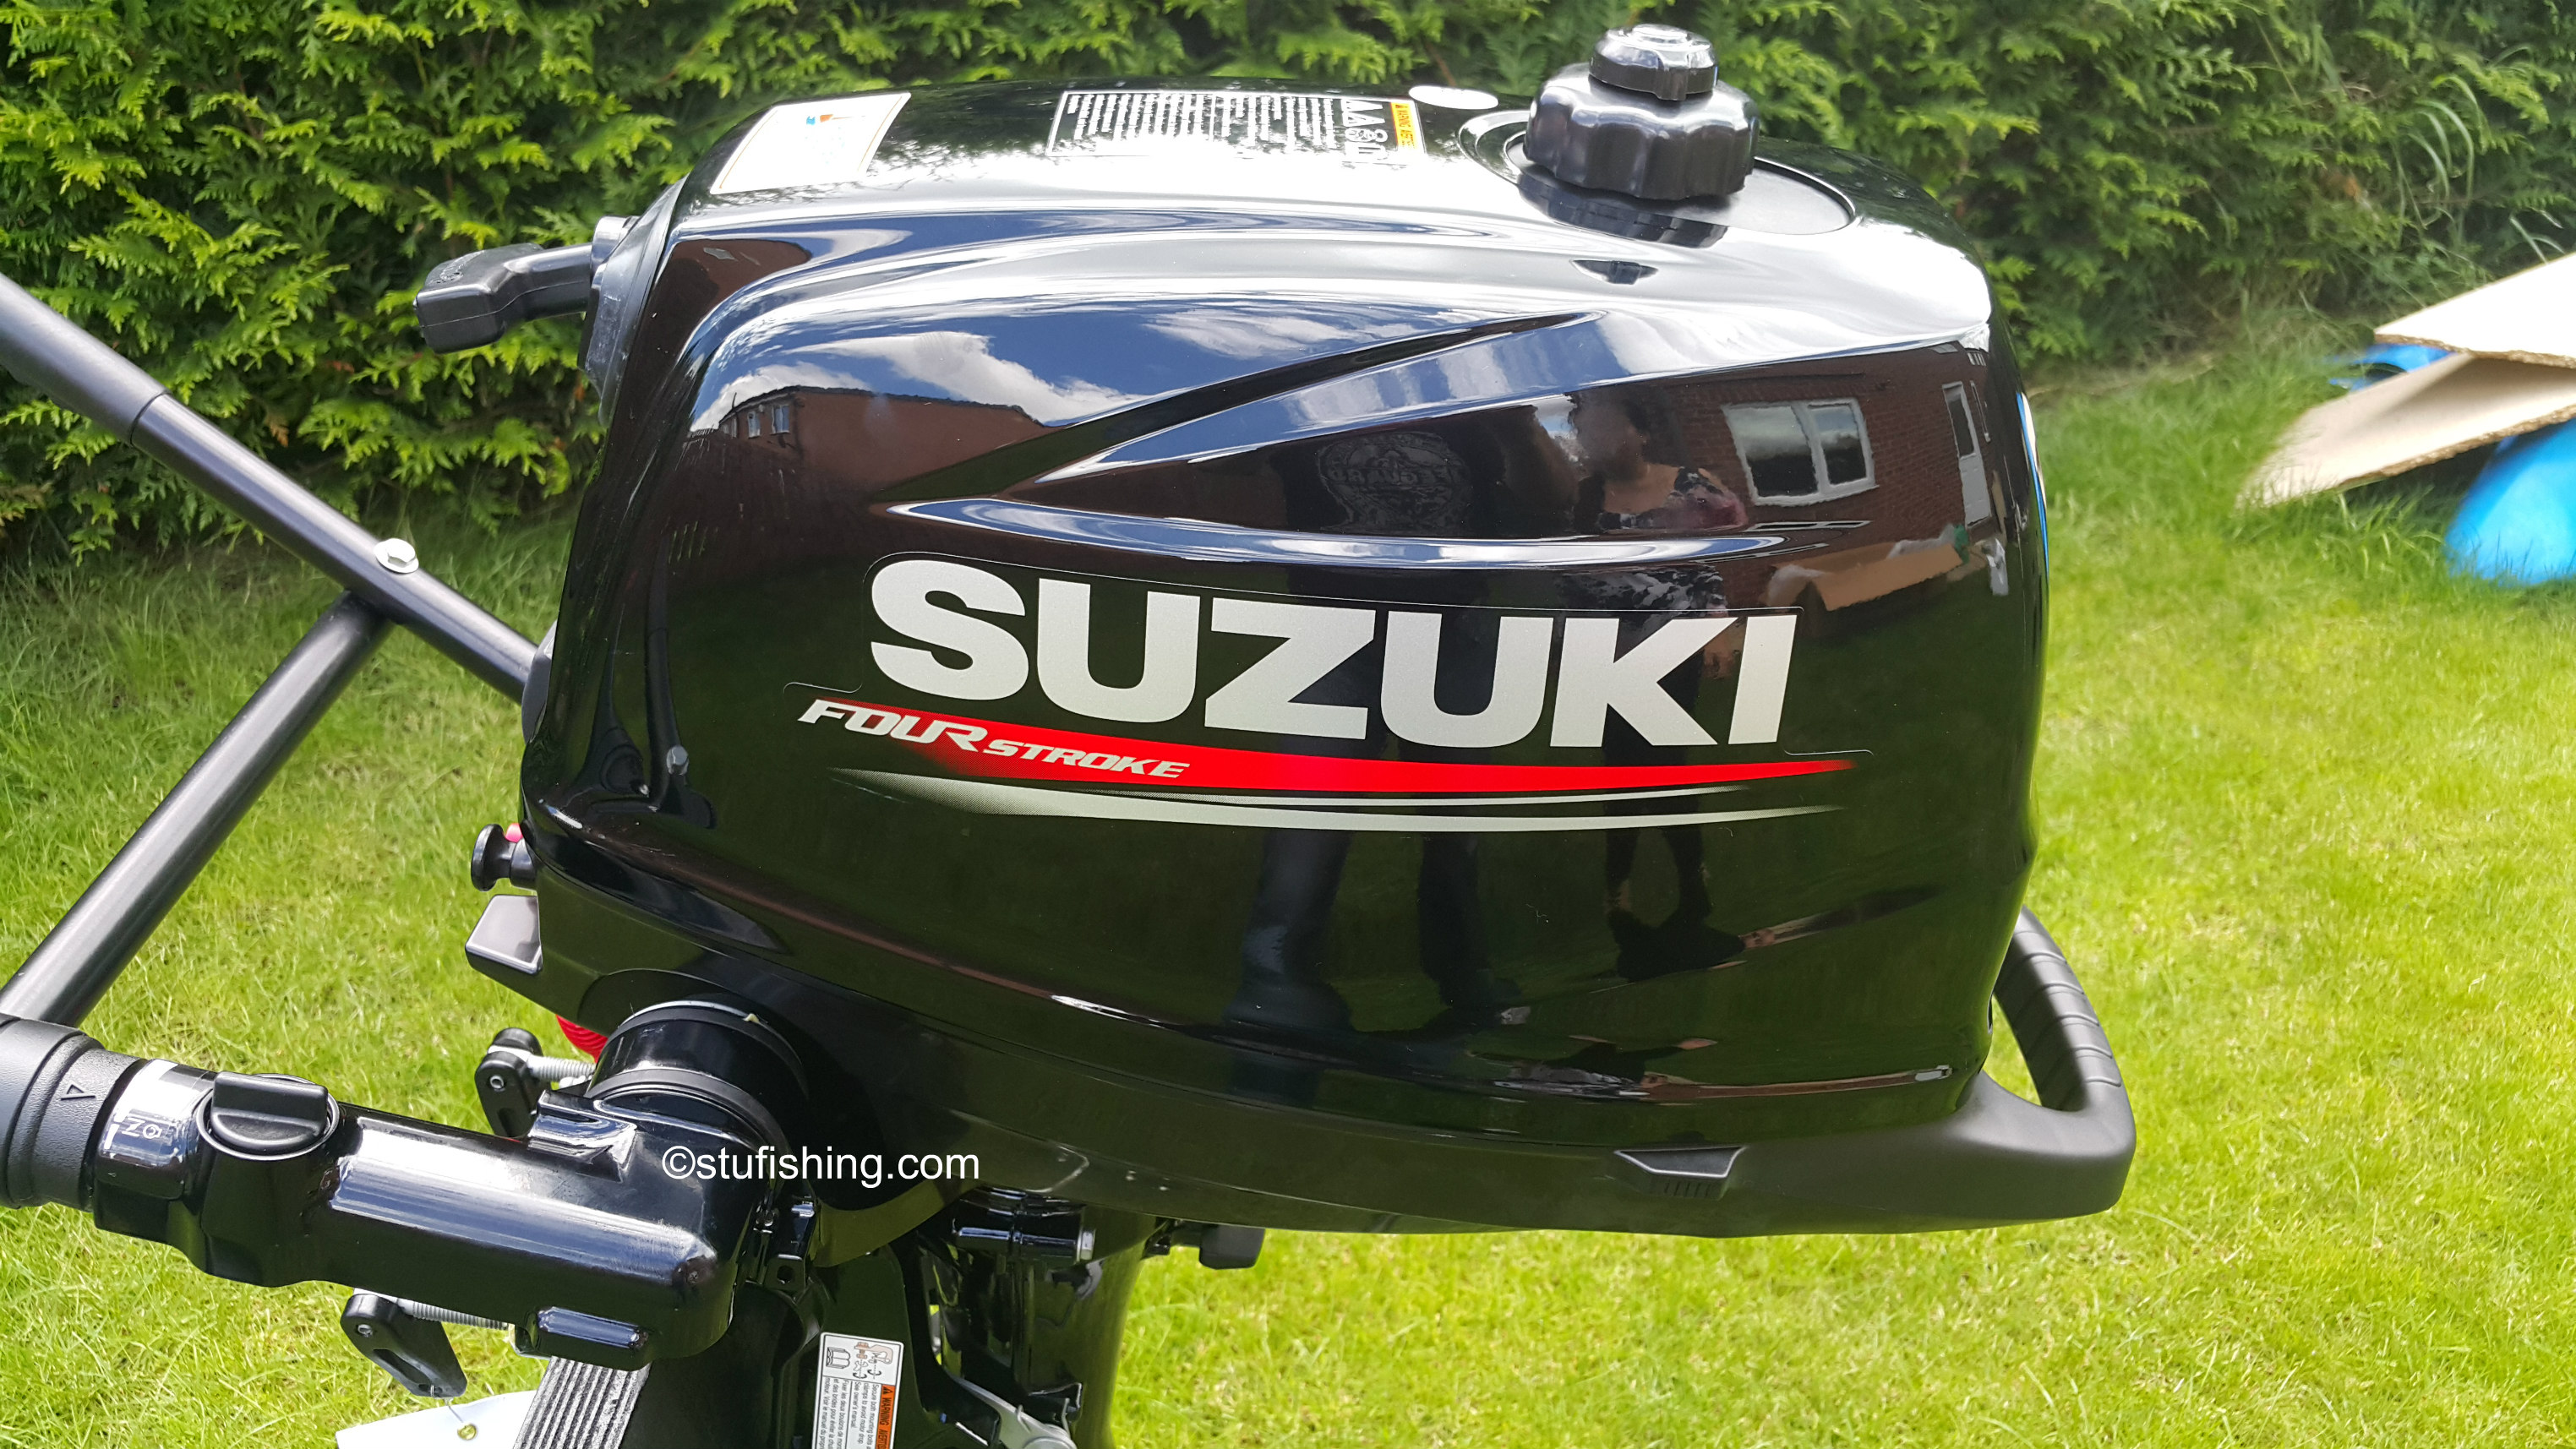 Suzuki Df6a 6hp Outboard Motor 4 Stroke Stufishing Horsepower 5 Model 5hp 2